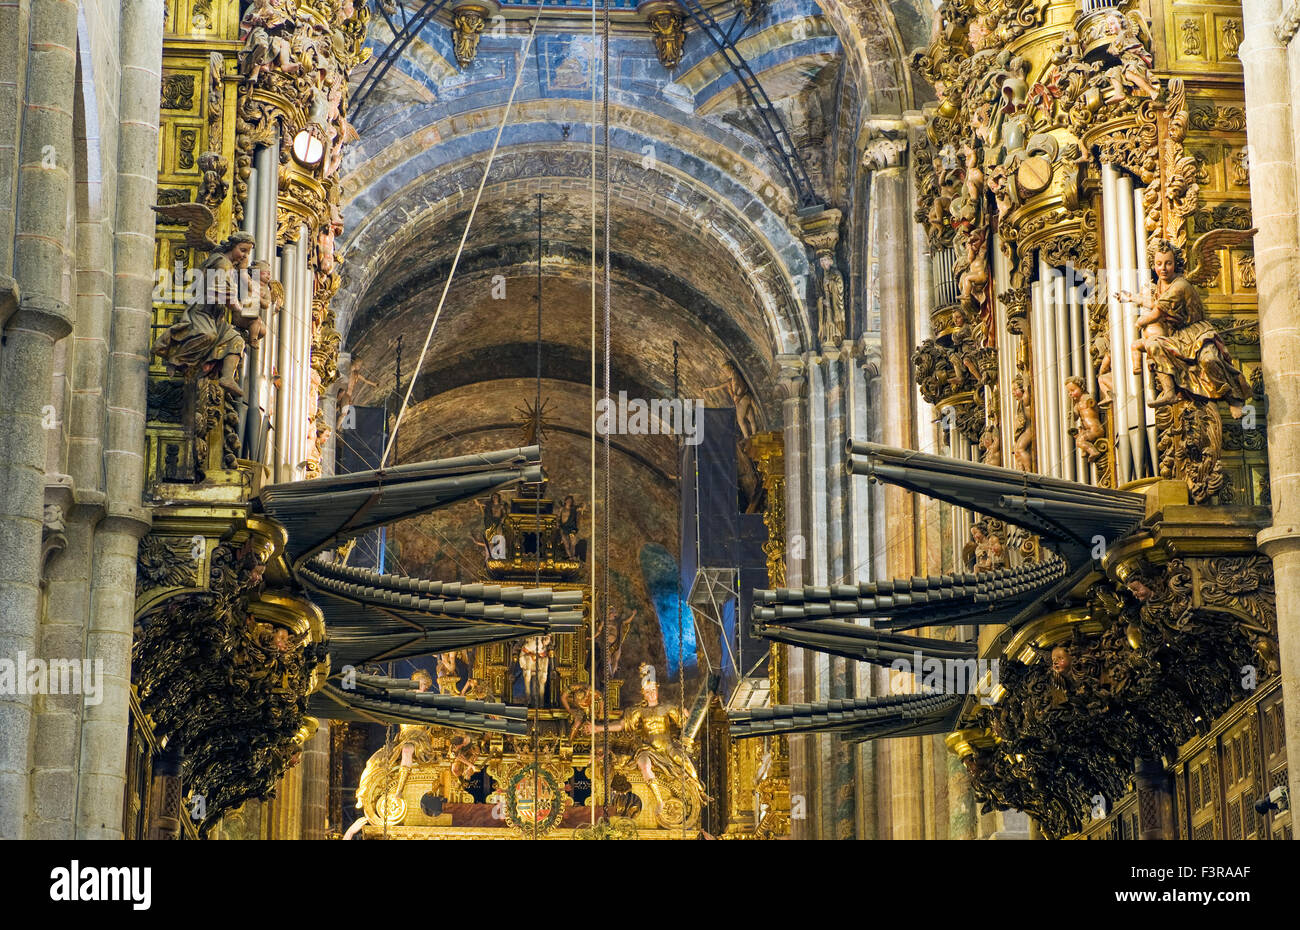 Interior cathedral detail showing organ pipes in the The Cathedral of Santiago de Compostela in Spain - Stock Image